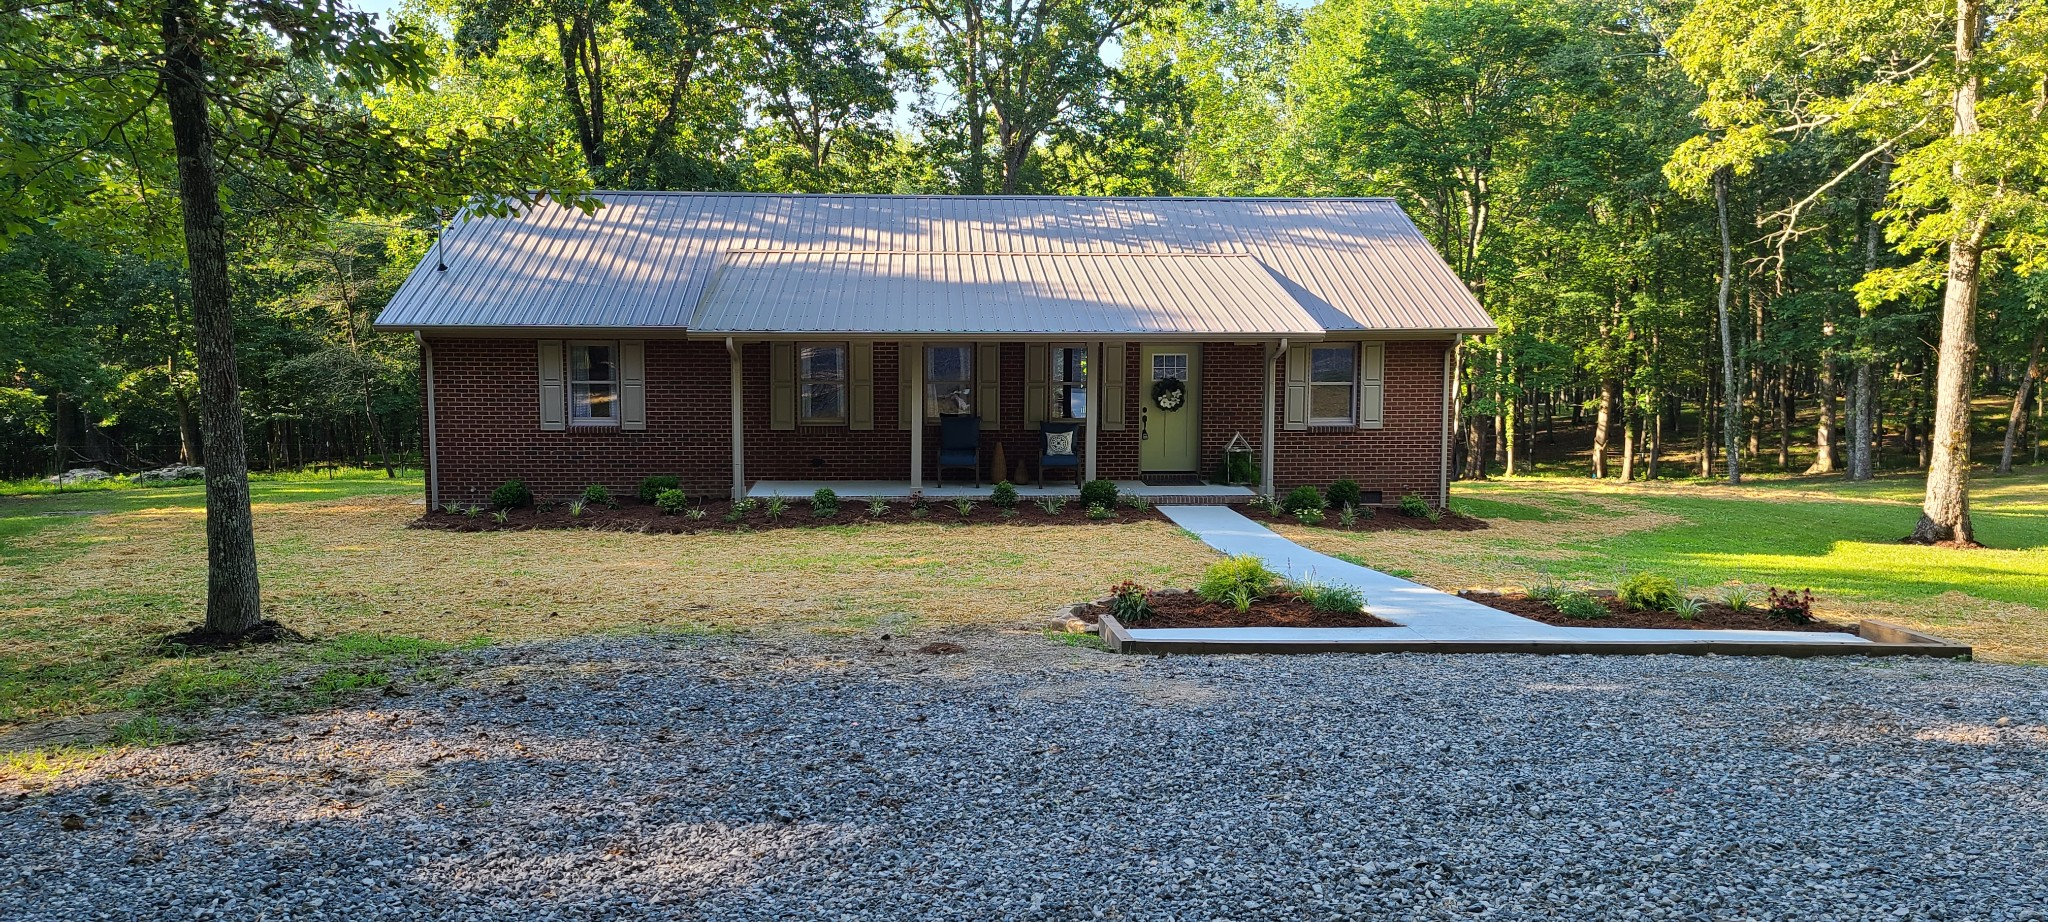 1383 Hobbs Hill Rd Property Photo - Tracy City, TN real estate listing